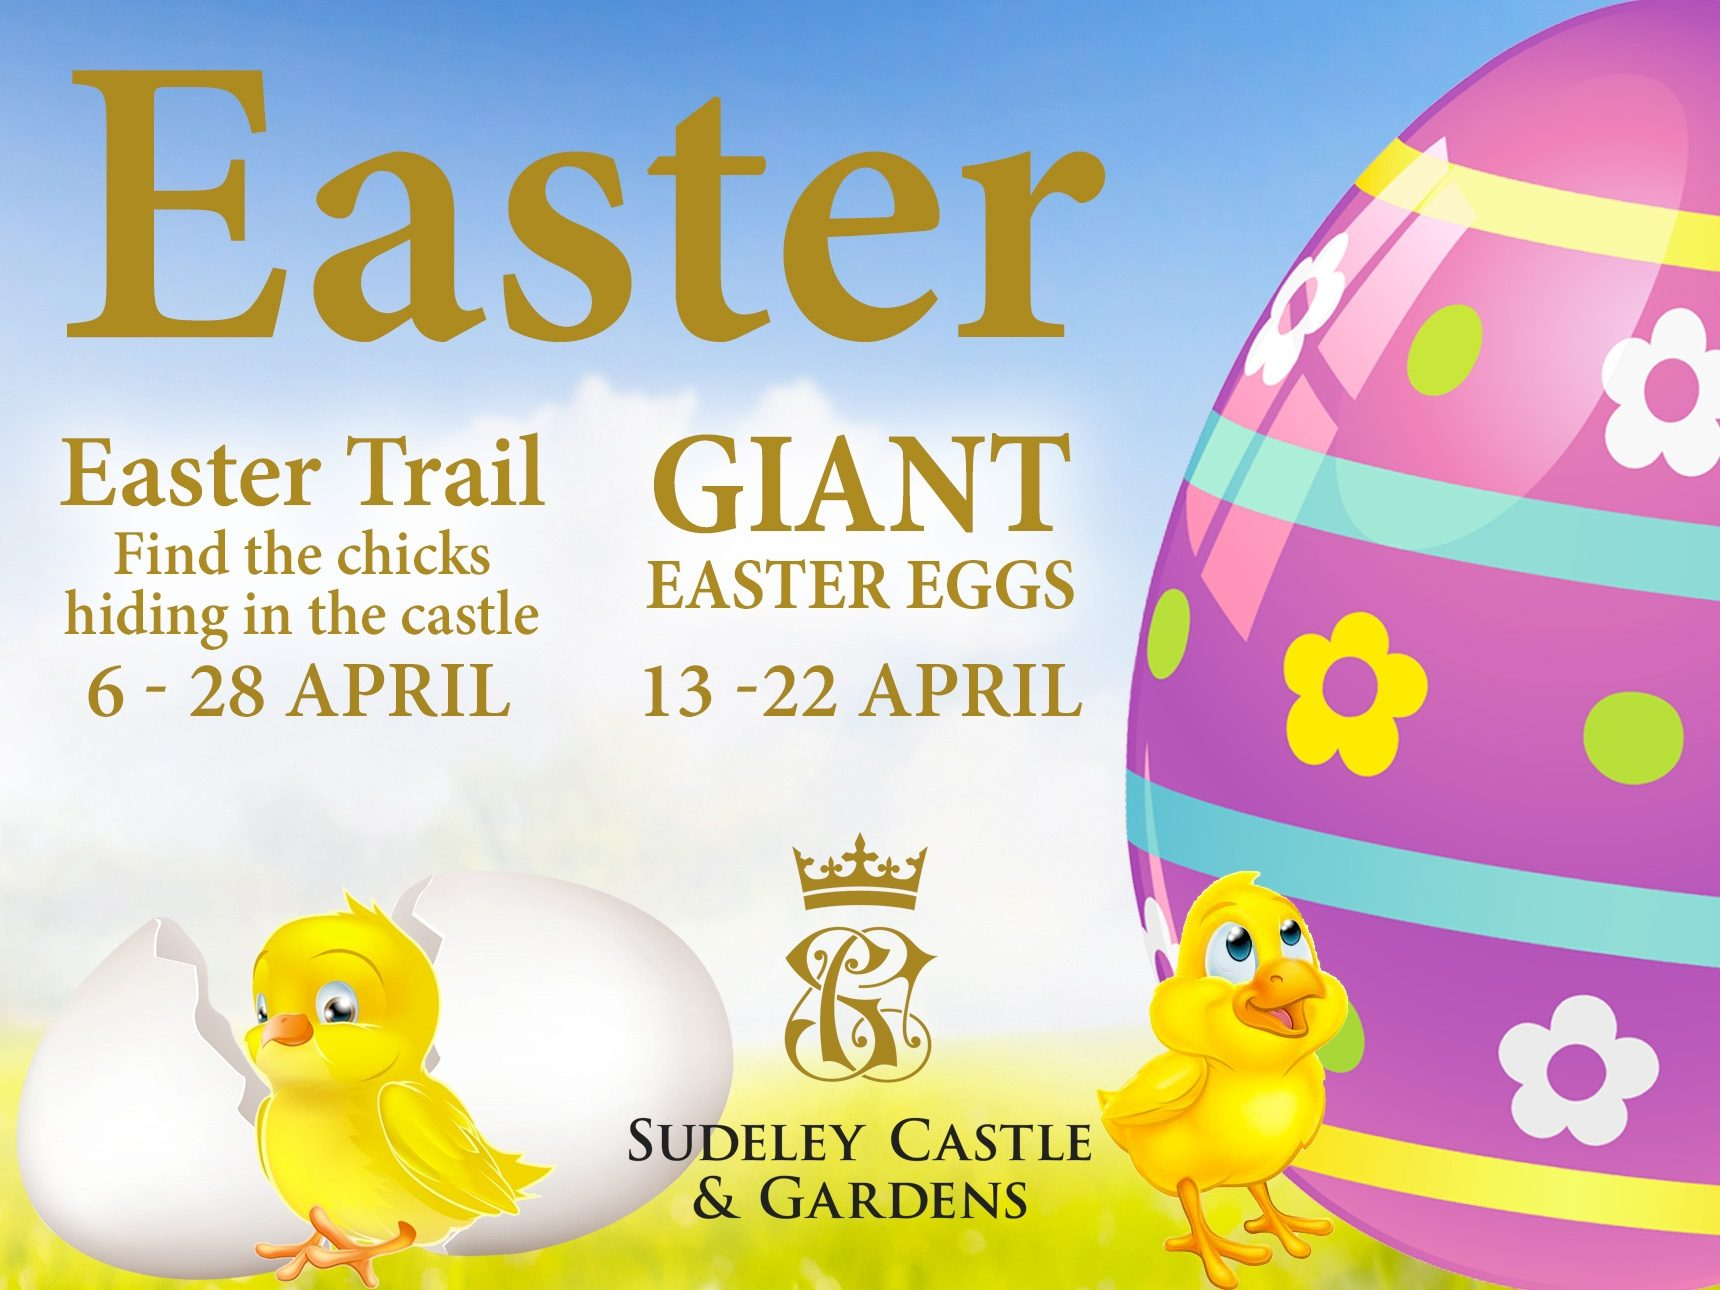 easter trail activities at sudeley castle